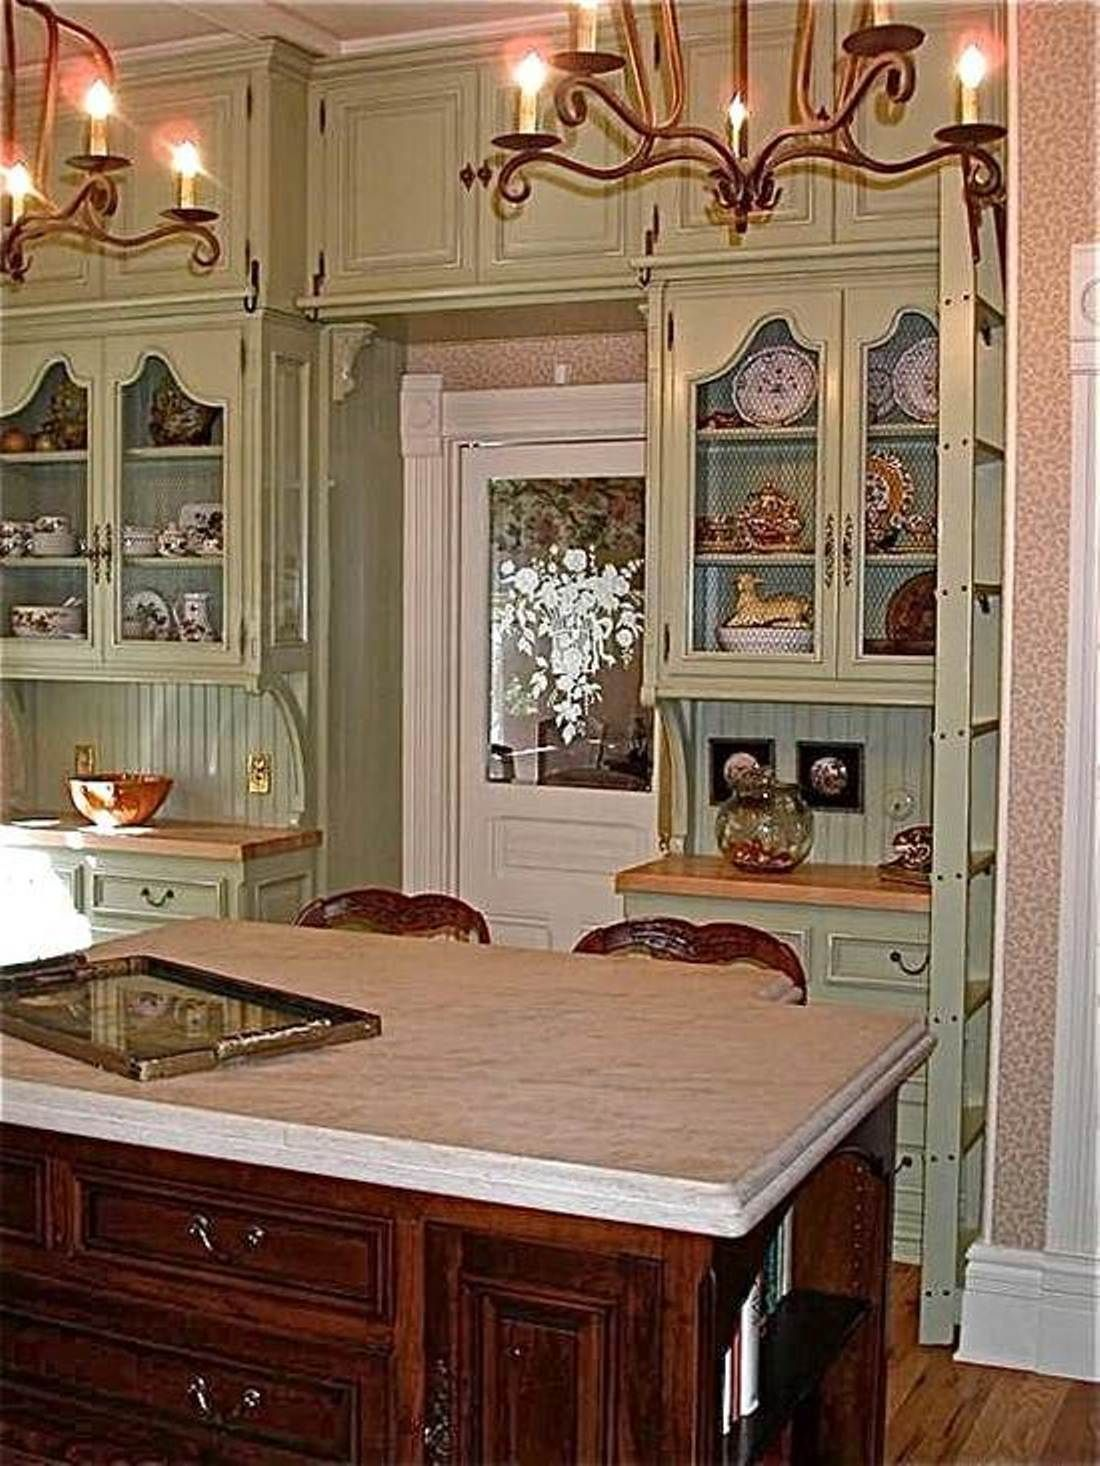 Nice victorian style kitchen my 1920 39 s home pinterest for Victorian kitchen ideas